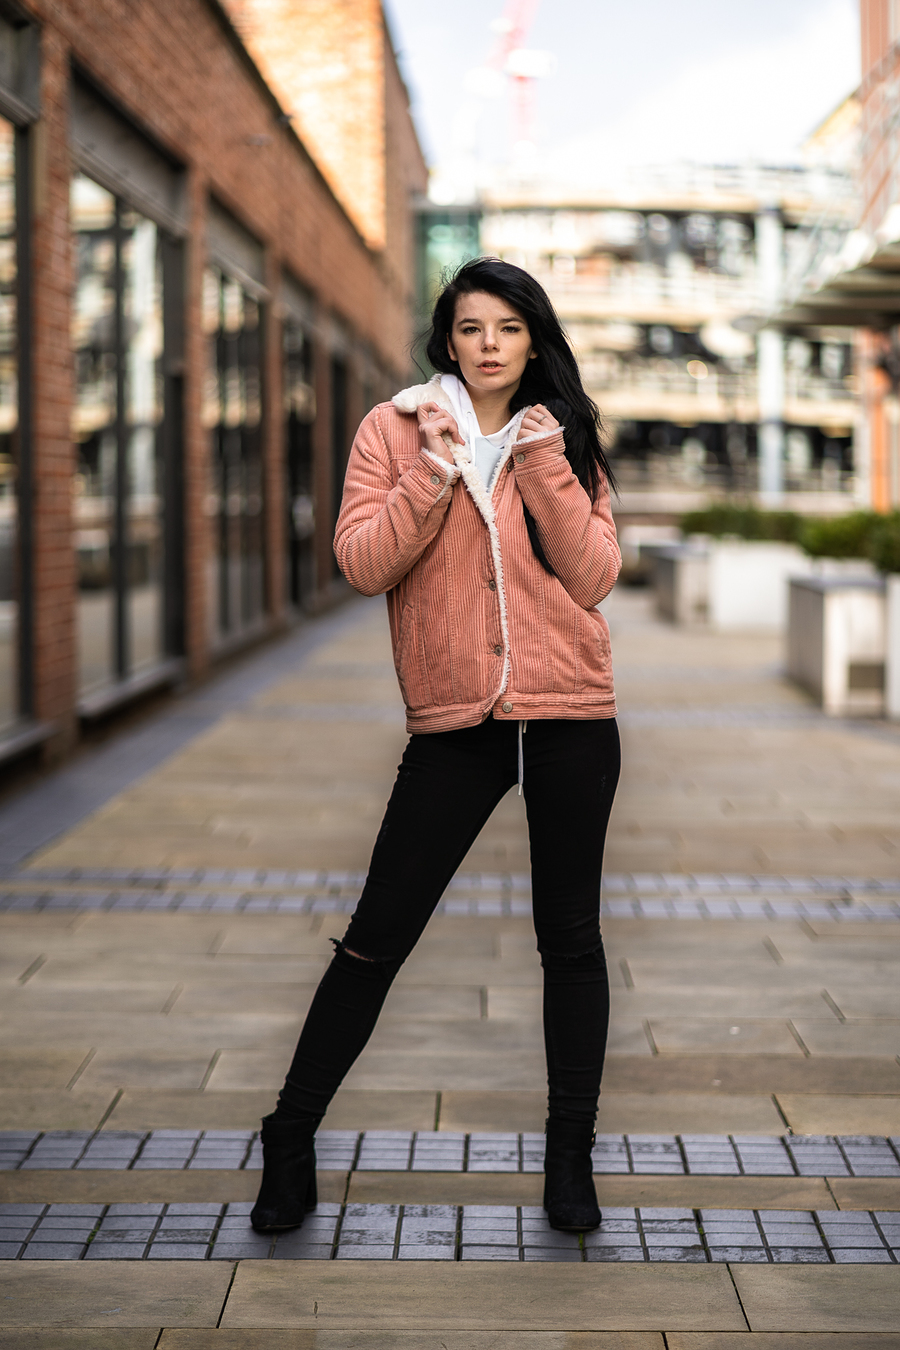 Photography by Simon Ng, Model chloesul / Uploaded 9th February 2021 @ 08:40 AM